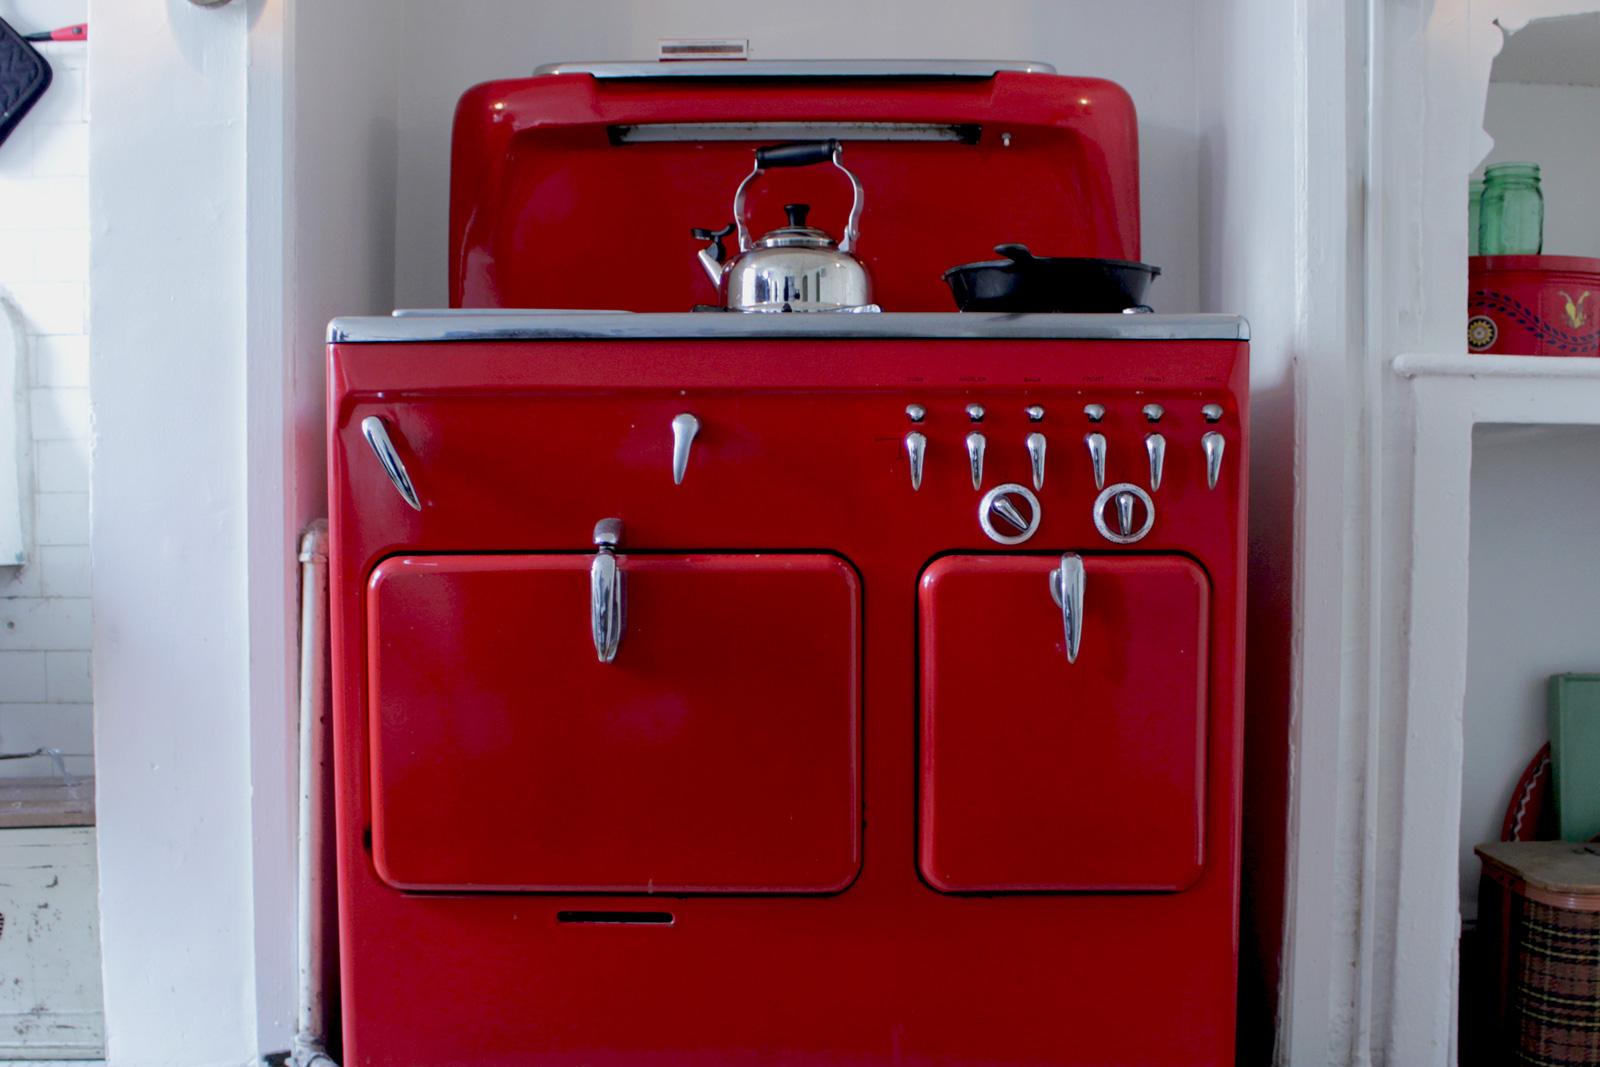 smart options kitchen flooring kitchen floors Red vintage stove in a home kitchen